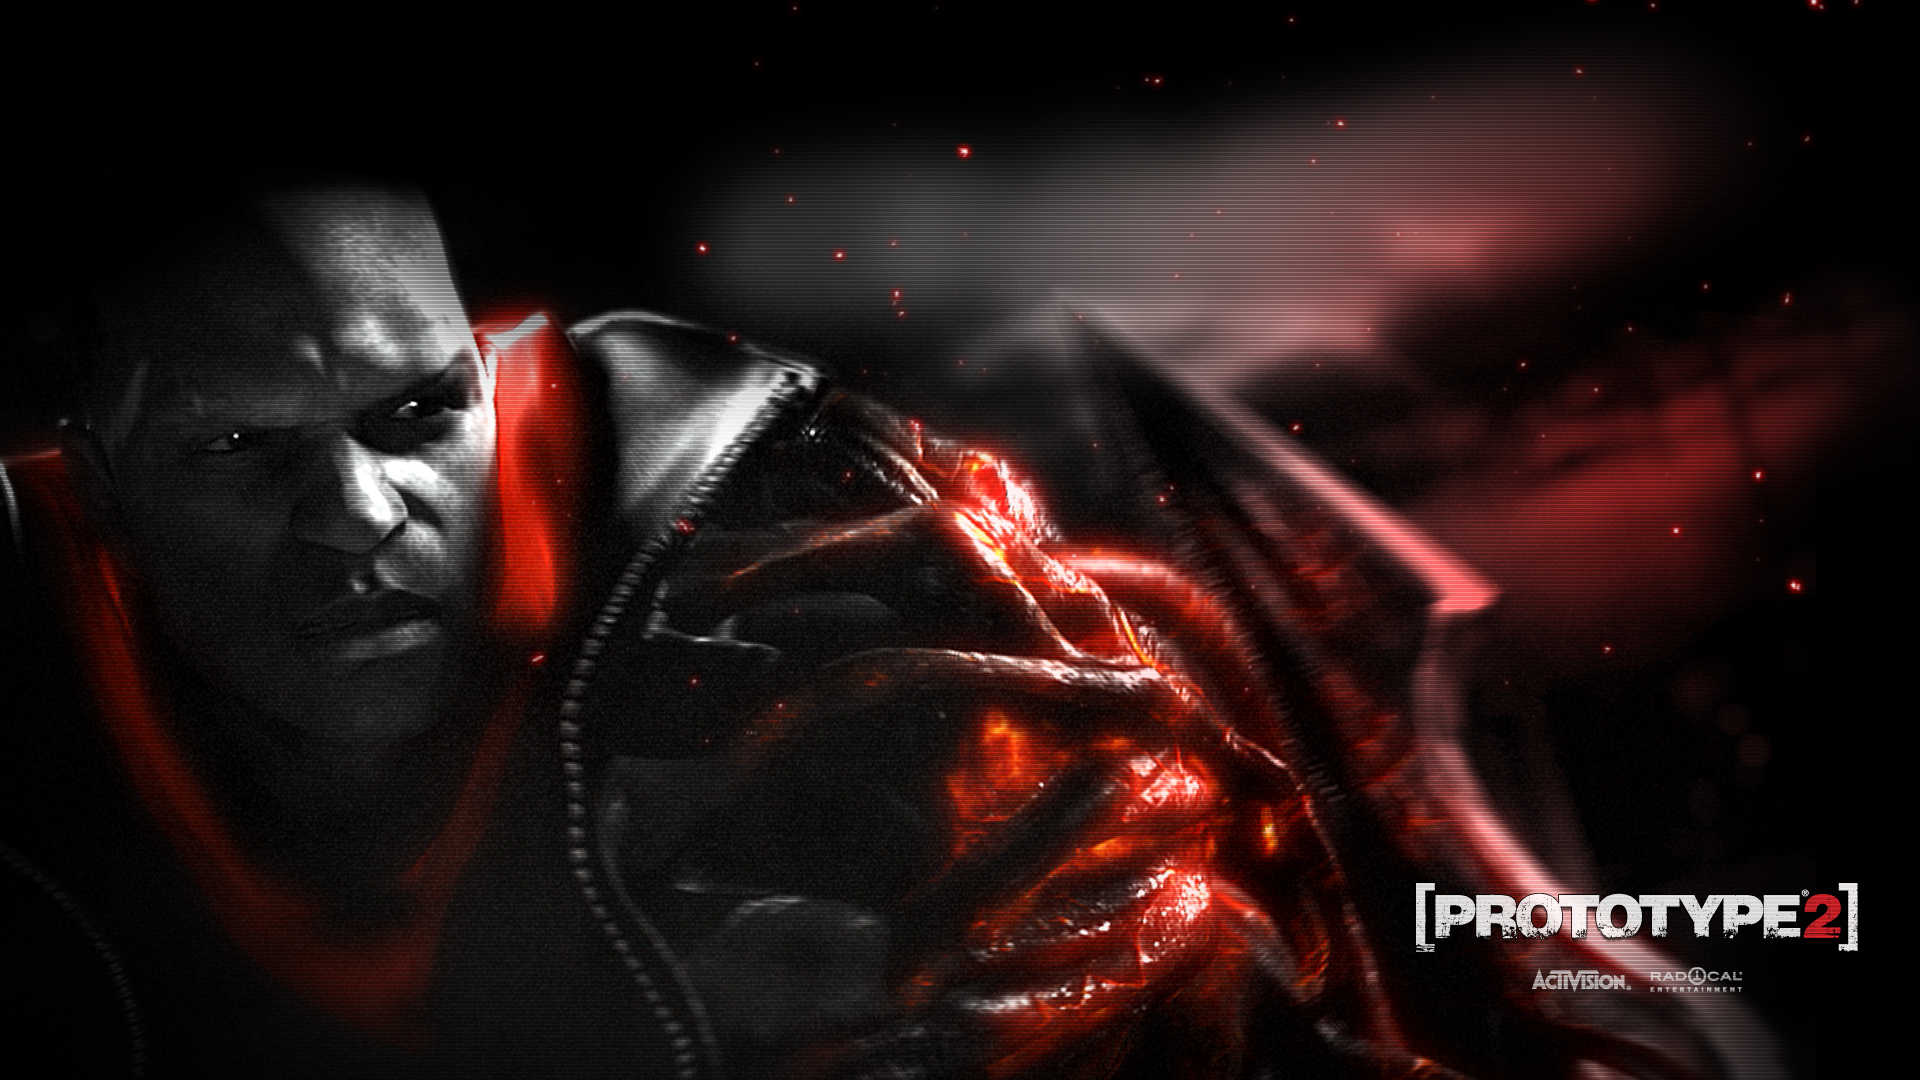 Prototype 2 Wallpapers Hd: Prototype 2 Full HD Wallpaper And Background Image